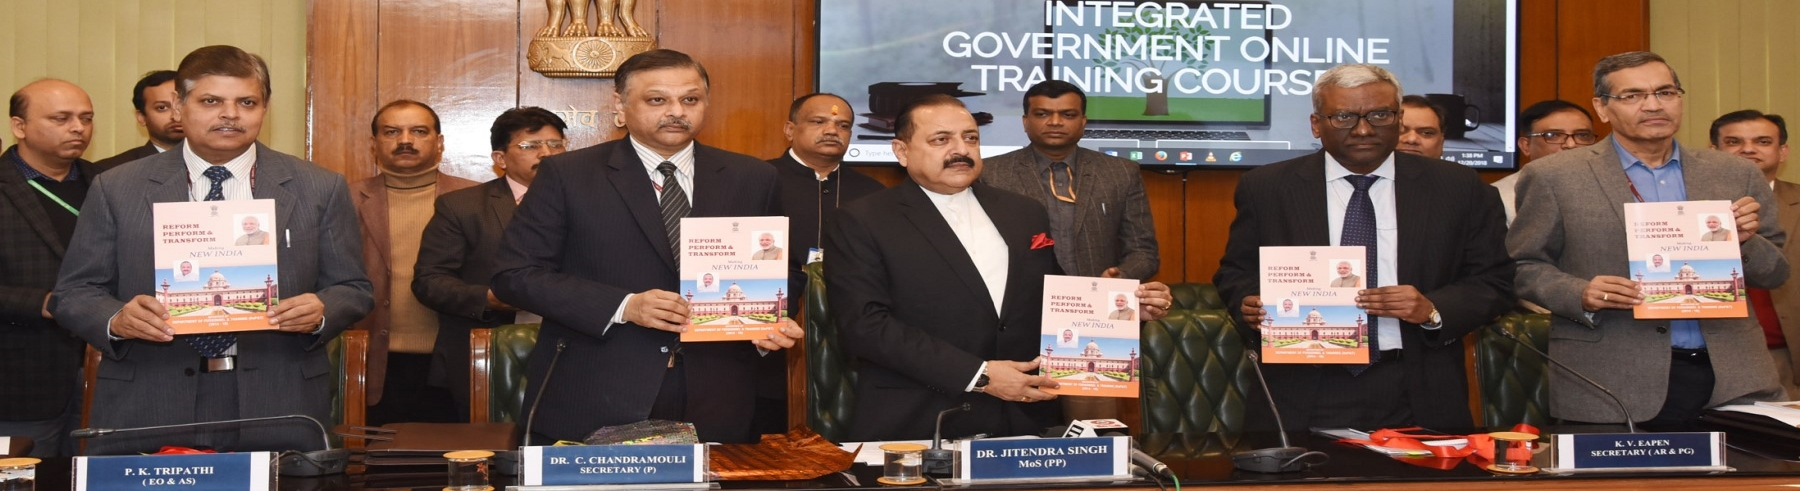 Launching of iGOT (Integrated Government Online Training) Courses and release of booklet on Governance initiatives of DoPT by Dr.Jitendra Singh, Honourable MoS (PP)